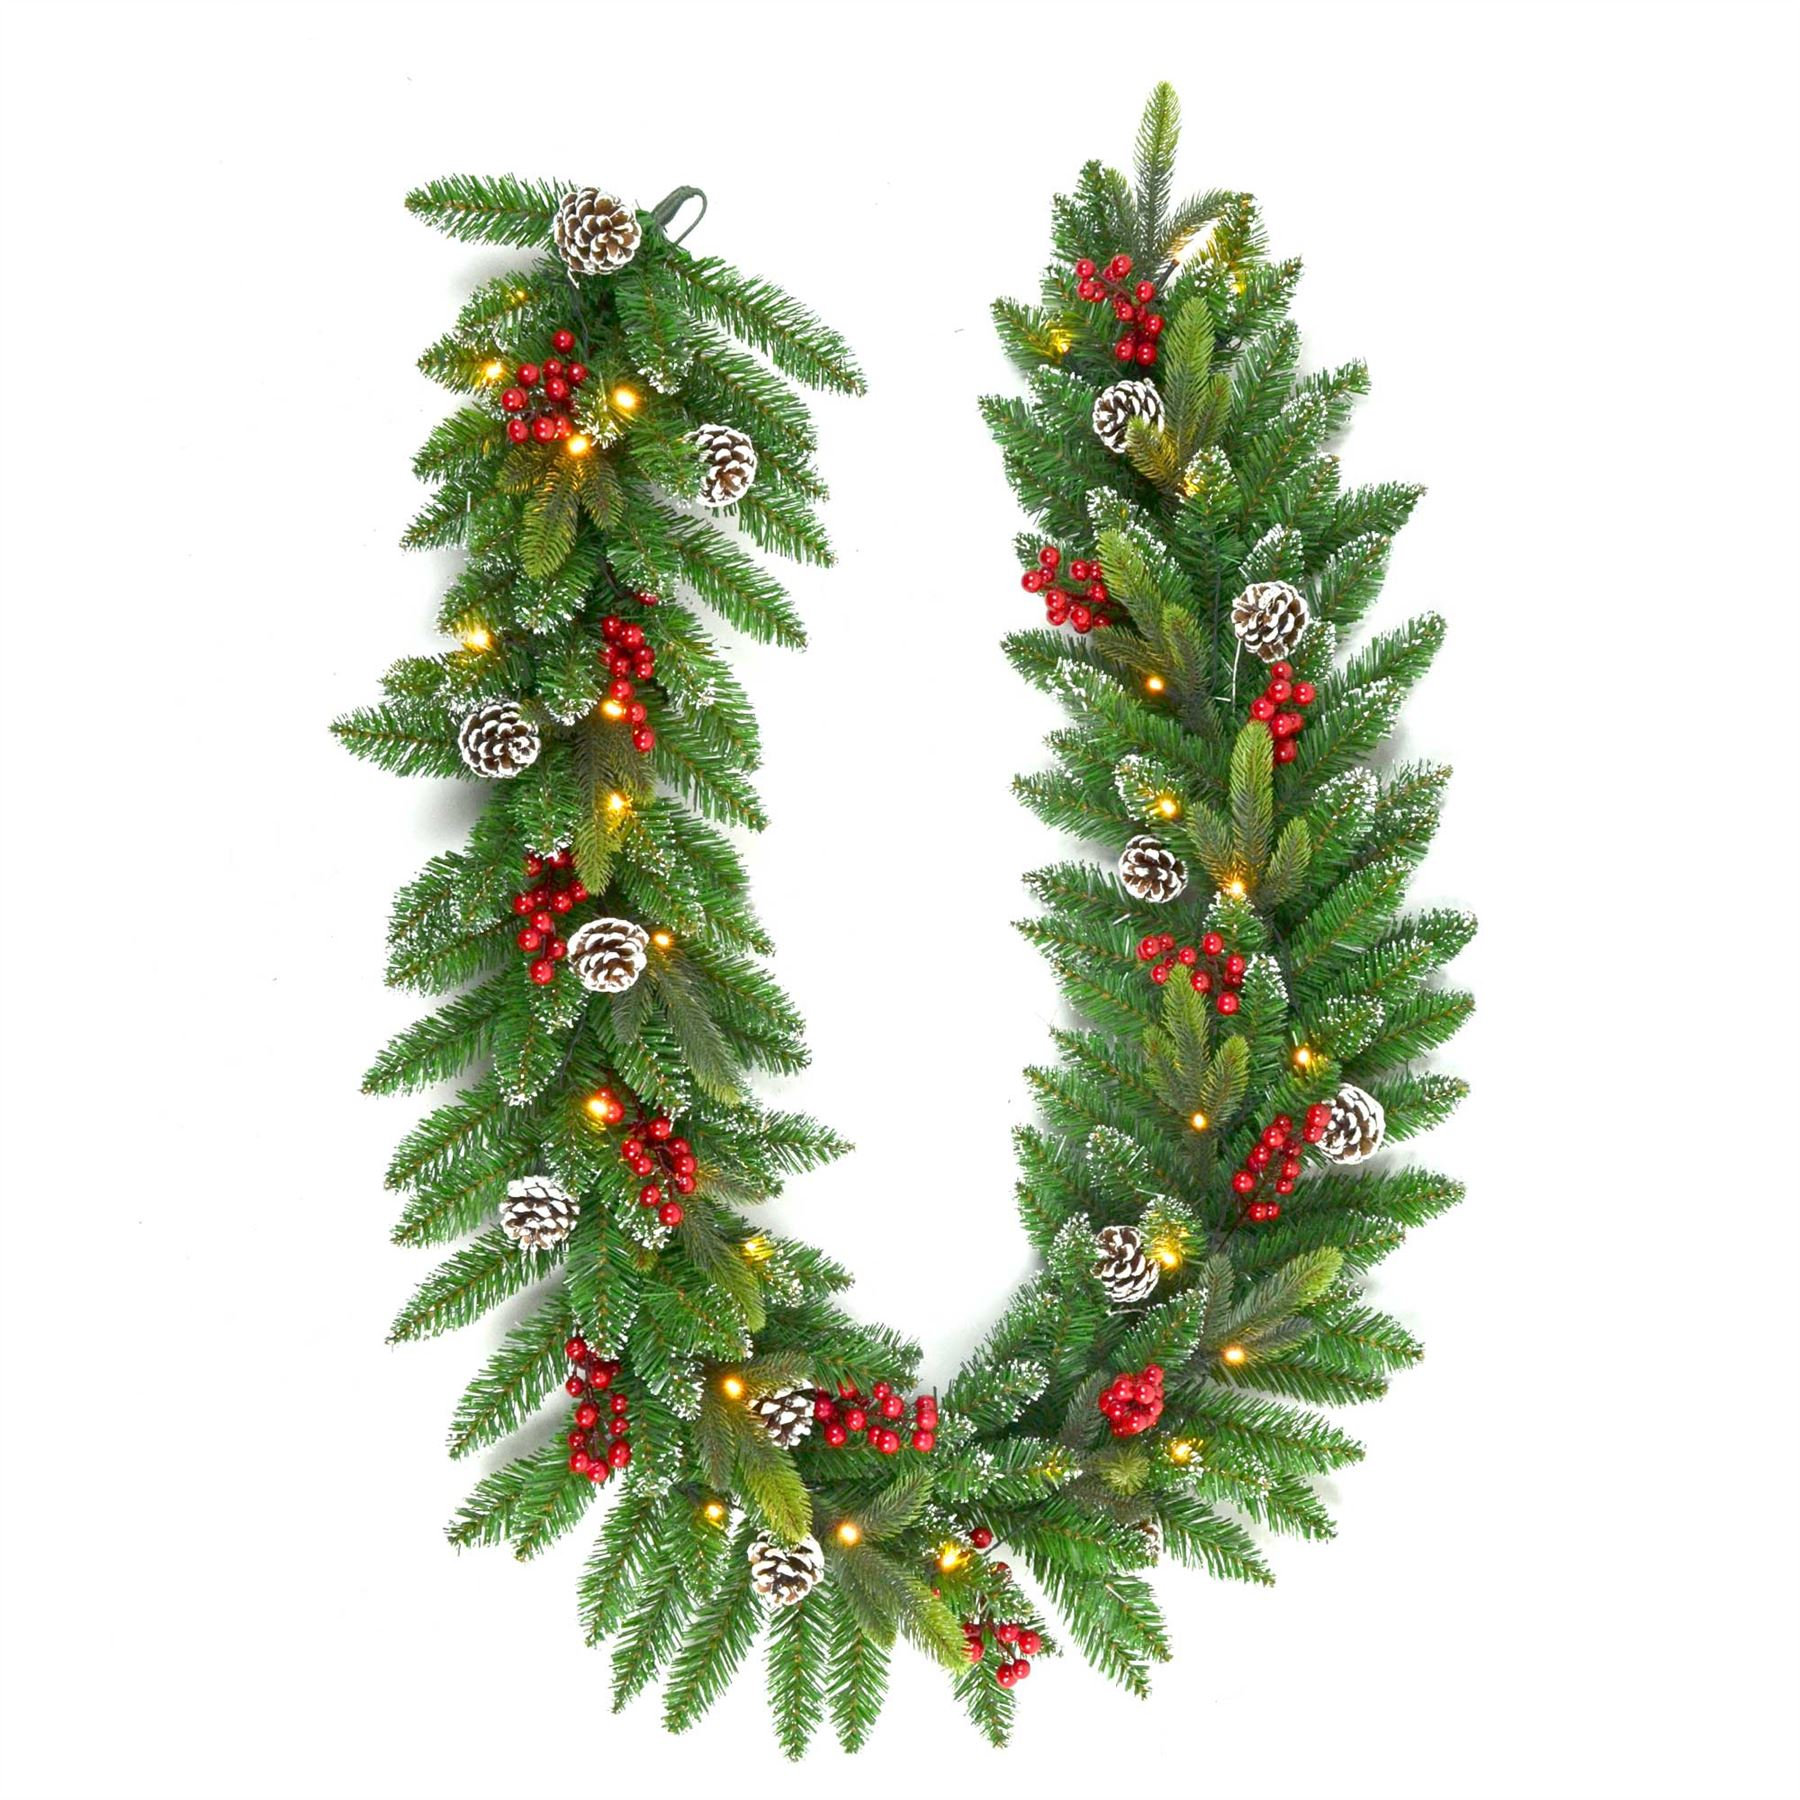 Christmas tree pre lit decorated garland wreath xmas home